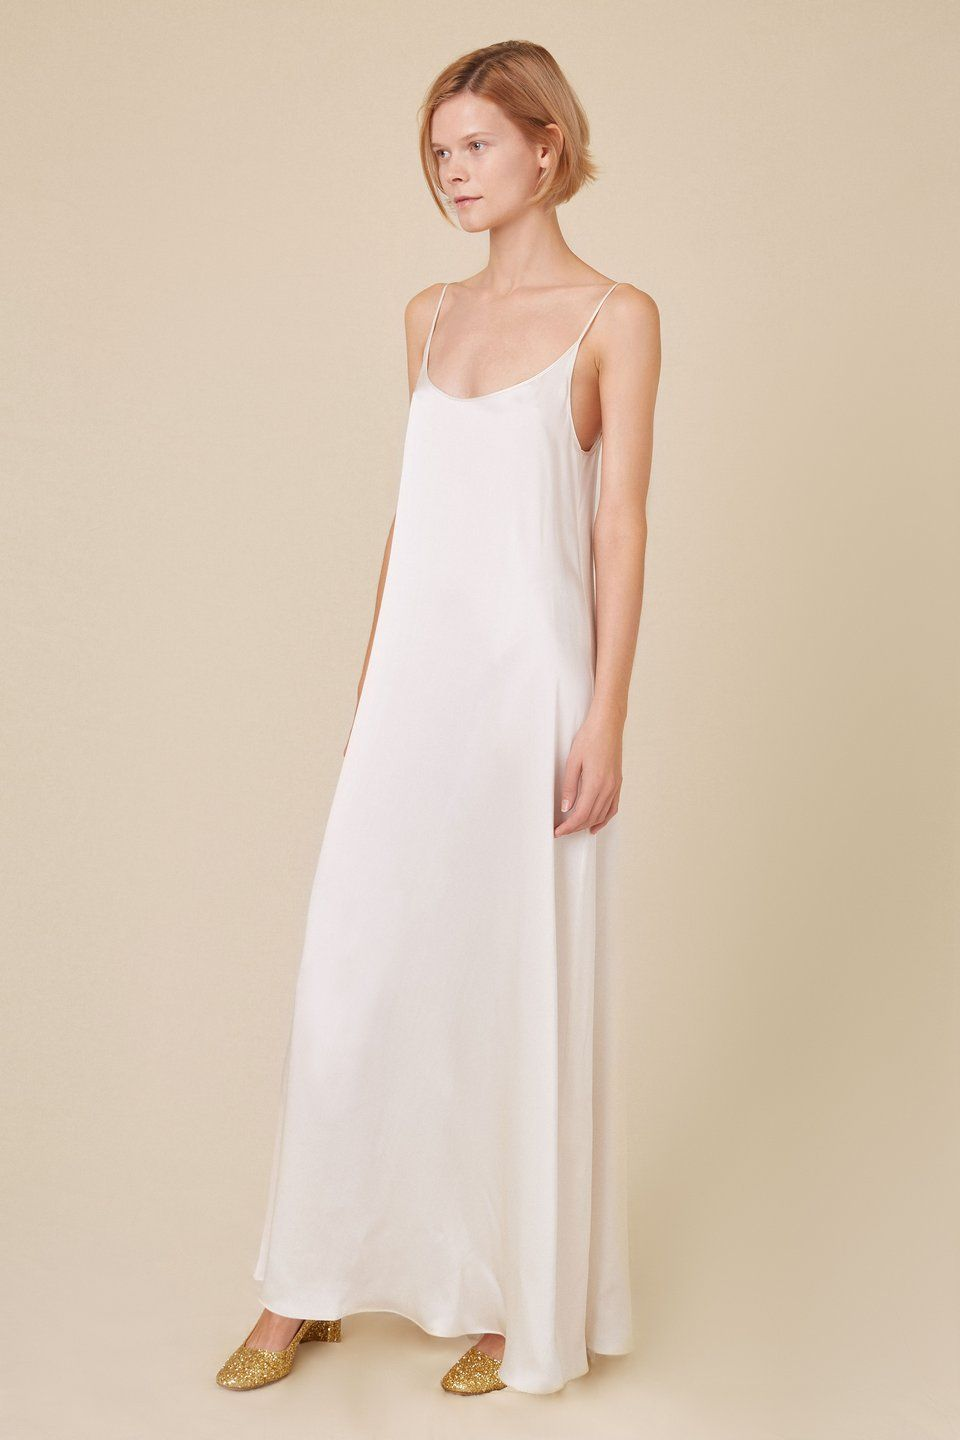 80d8beef6244 Italian silk charmeuse cream flowy slip dress. Relaxed, flowy fit. Thin  straps with scoop neckline. Floor length. (2 of 9)